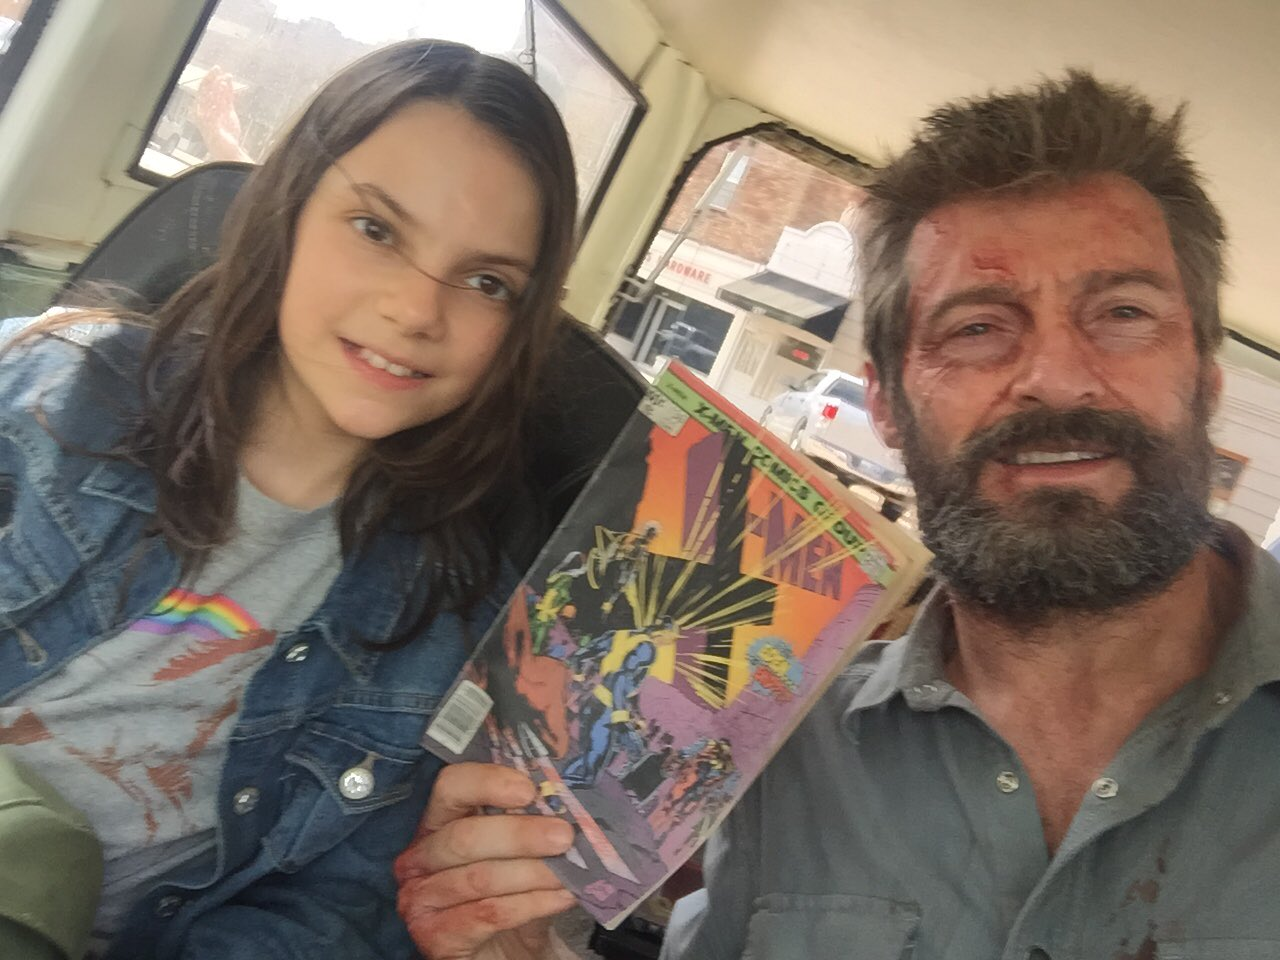 Guess who won this battle. Introducing the awesomely talented  @DafneKeen @WolverineMovie @20thcenturyfox https://t.co/c0SFq1bel6